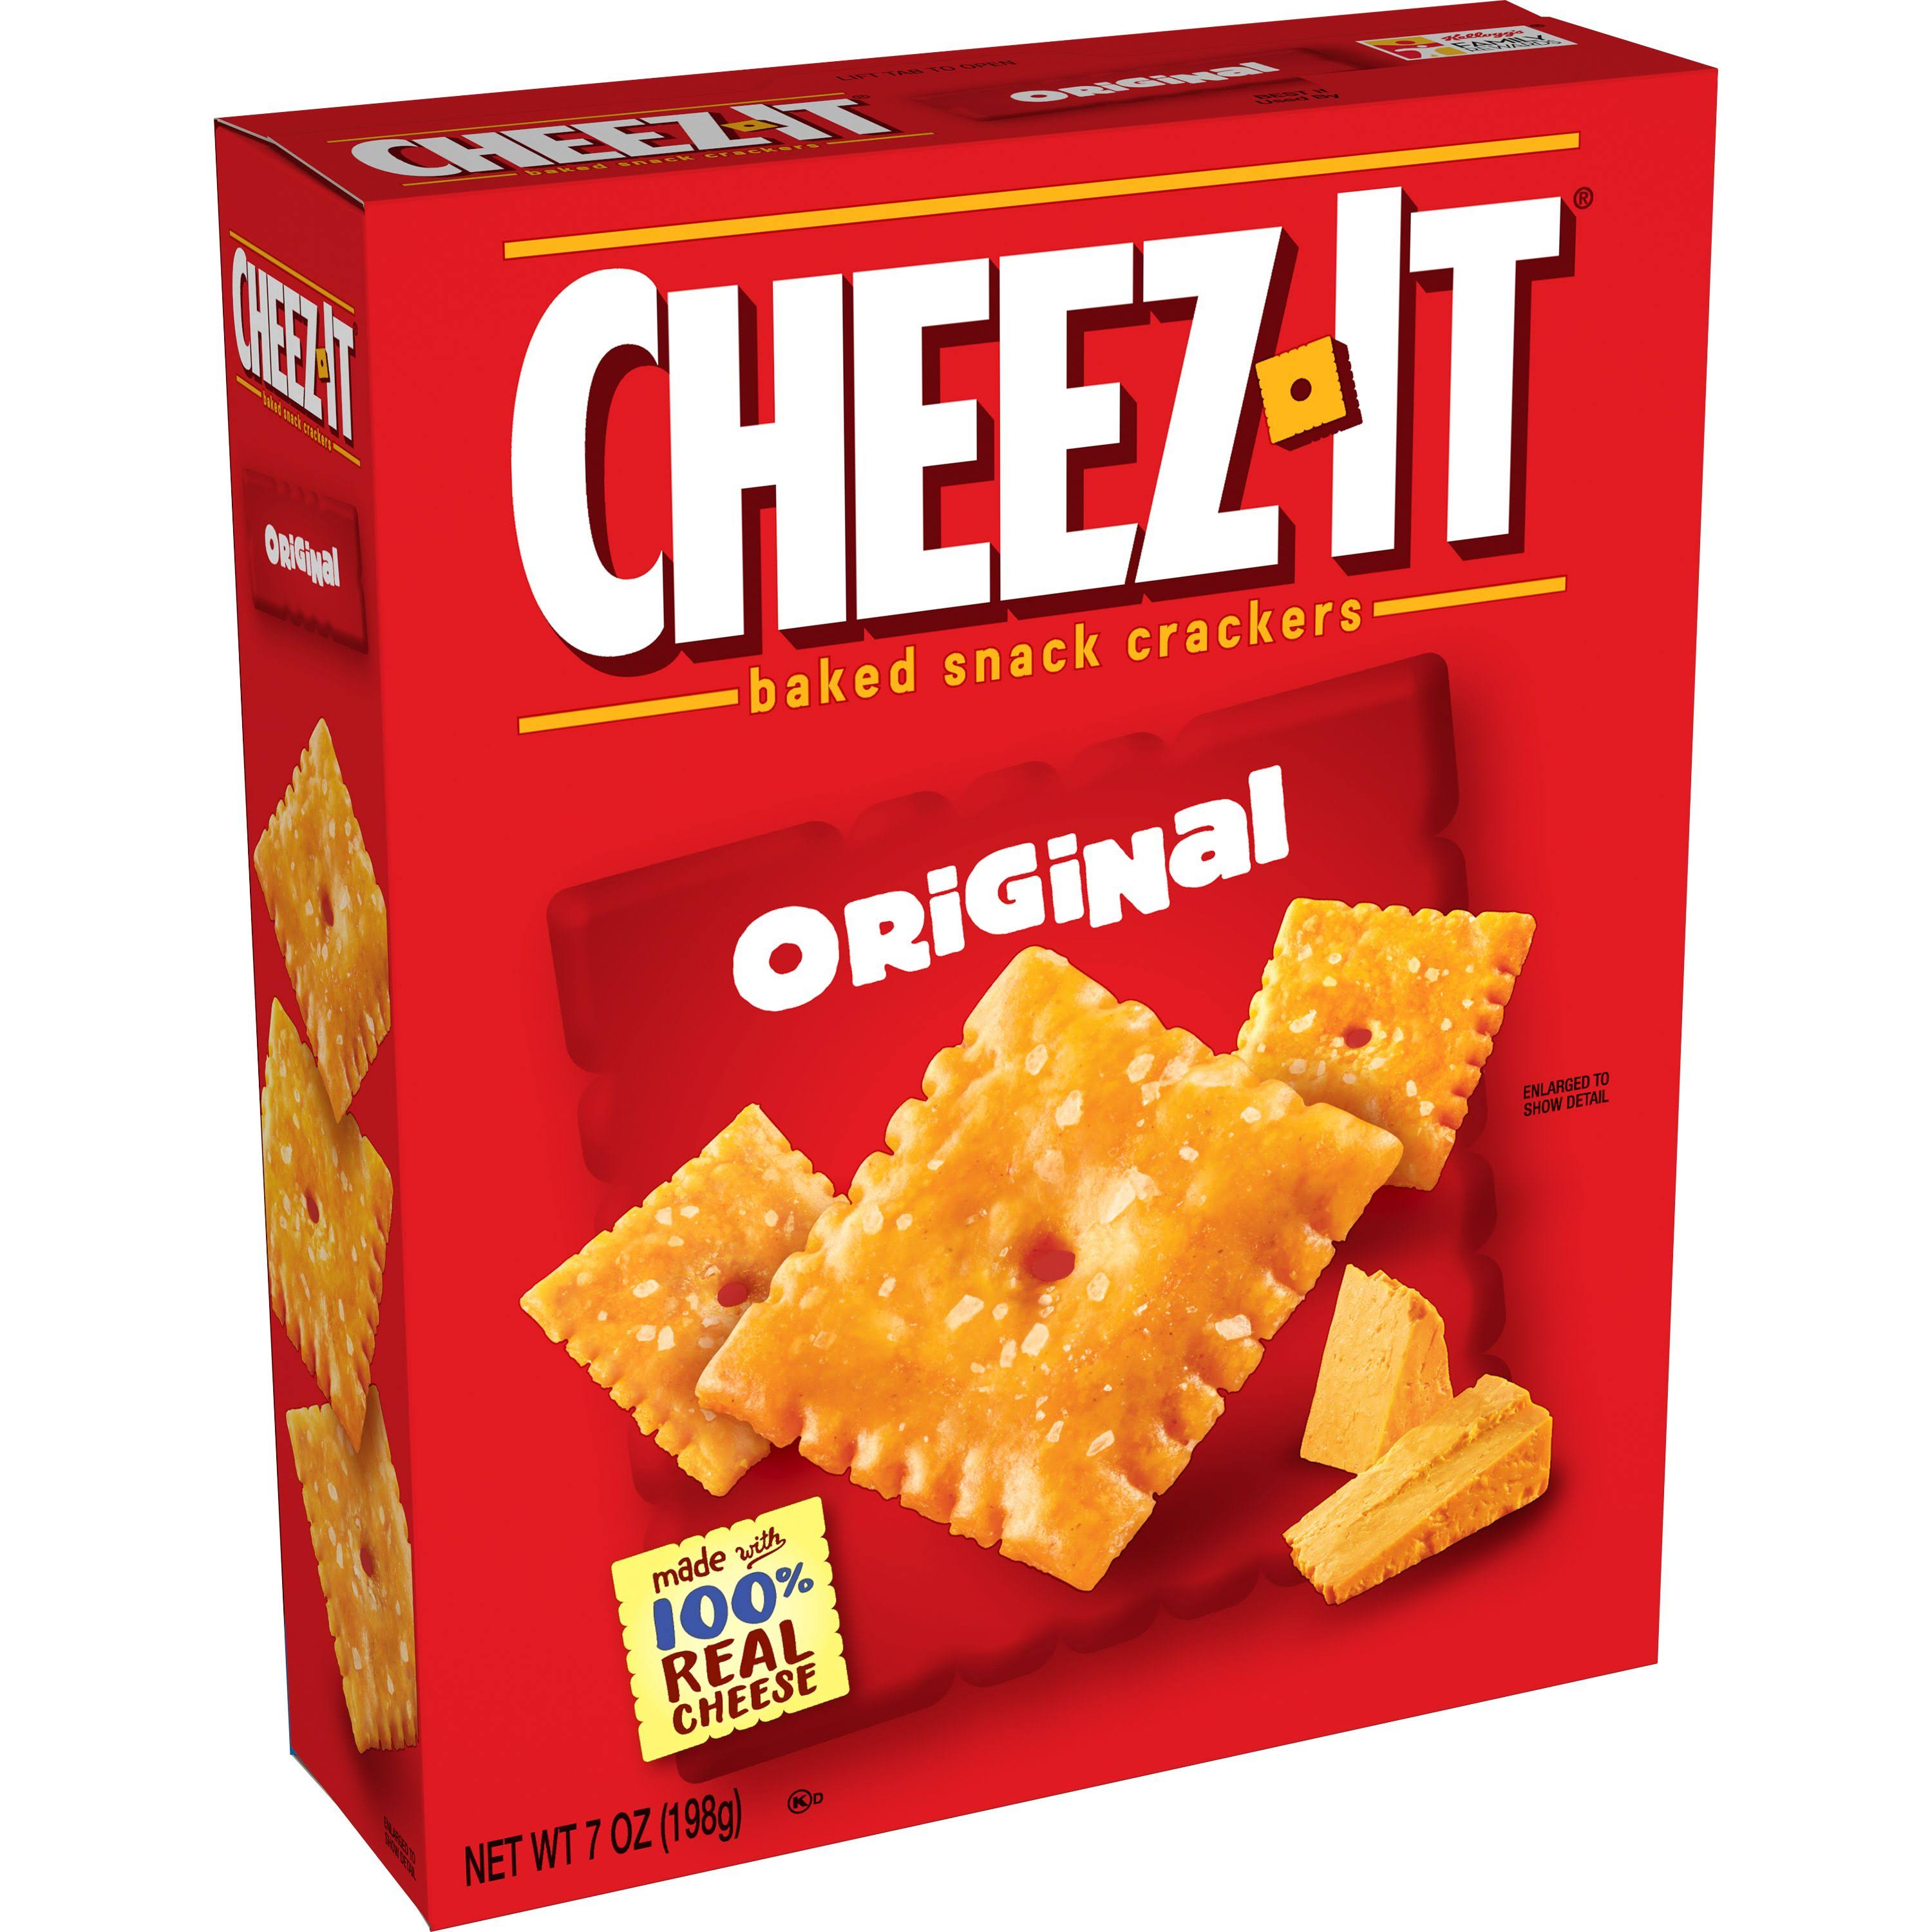 Cheez-It Baked Snack Crackers - Original, 198g